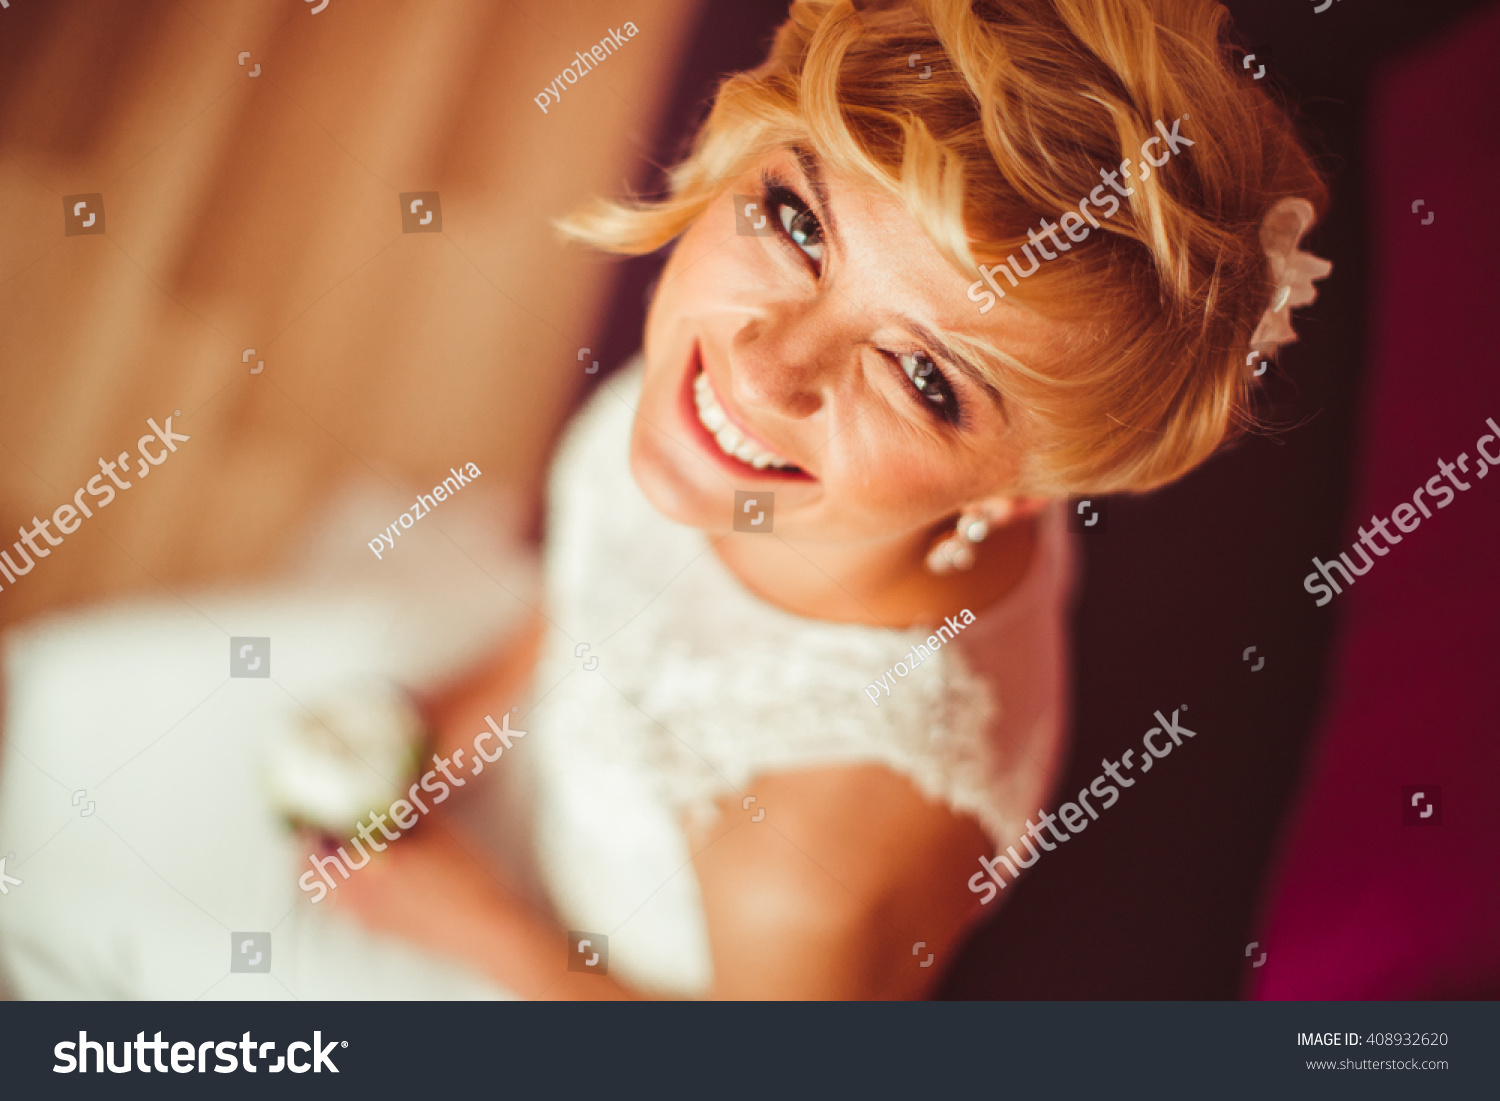 smiling happy wonderful bride pose to photographer #408932620